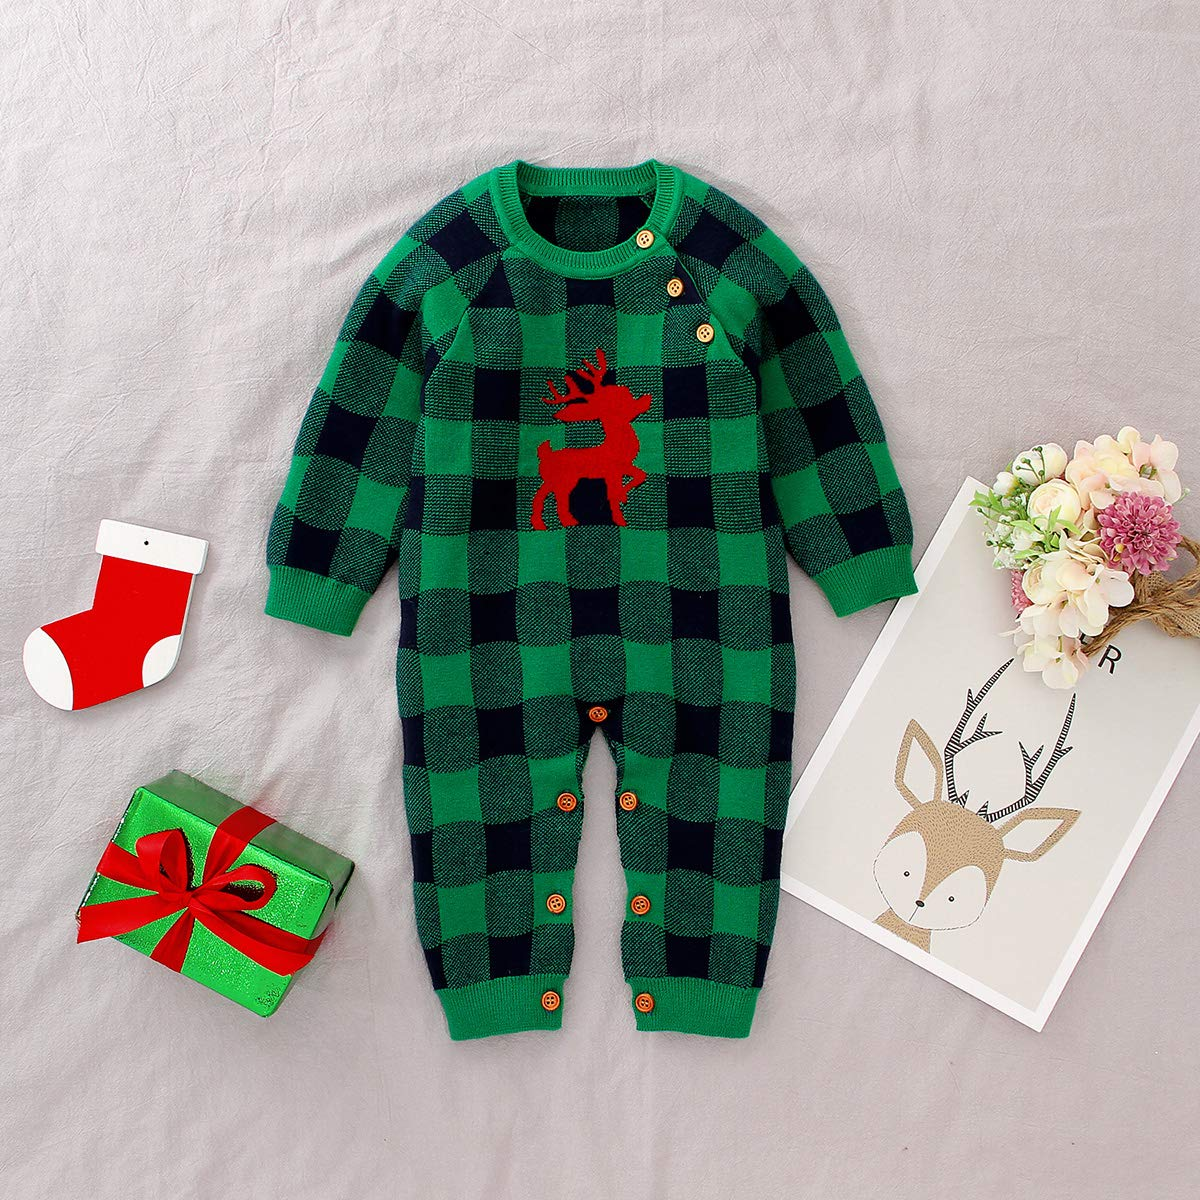 puseky Baby Boys Girls Long Sleeve Xmas Plaid Knit Romper Jumpsuit Christmas Elk Bodysuit Outfits